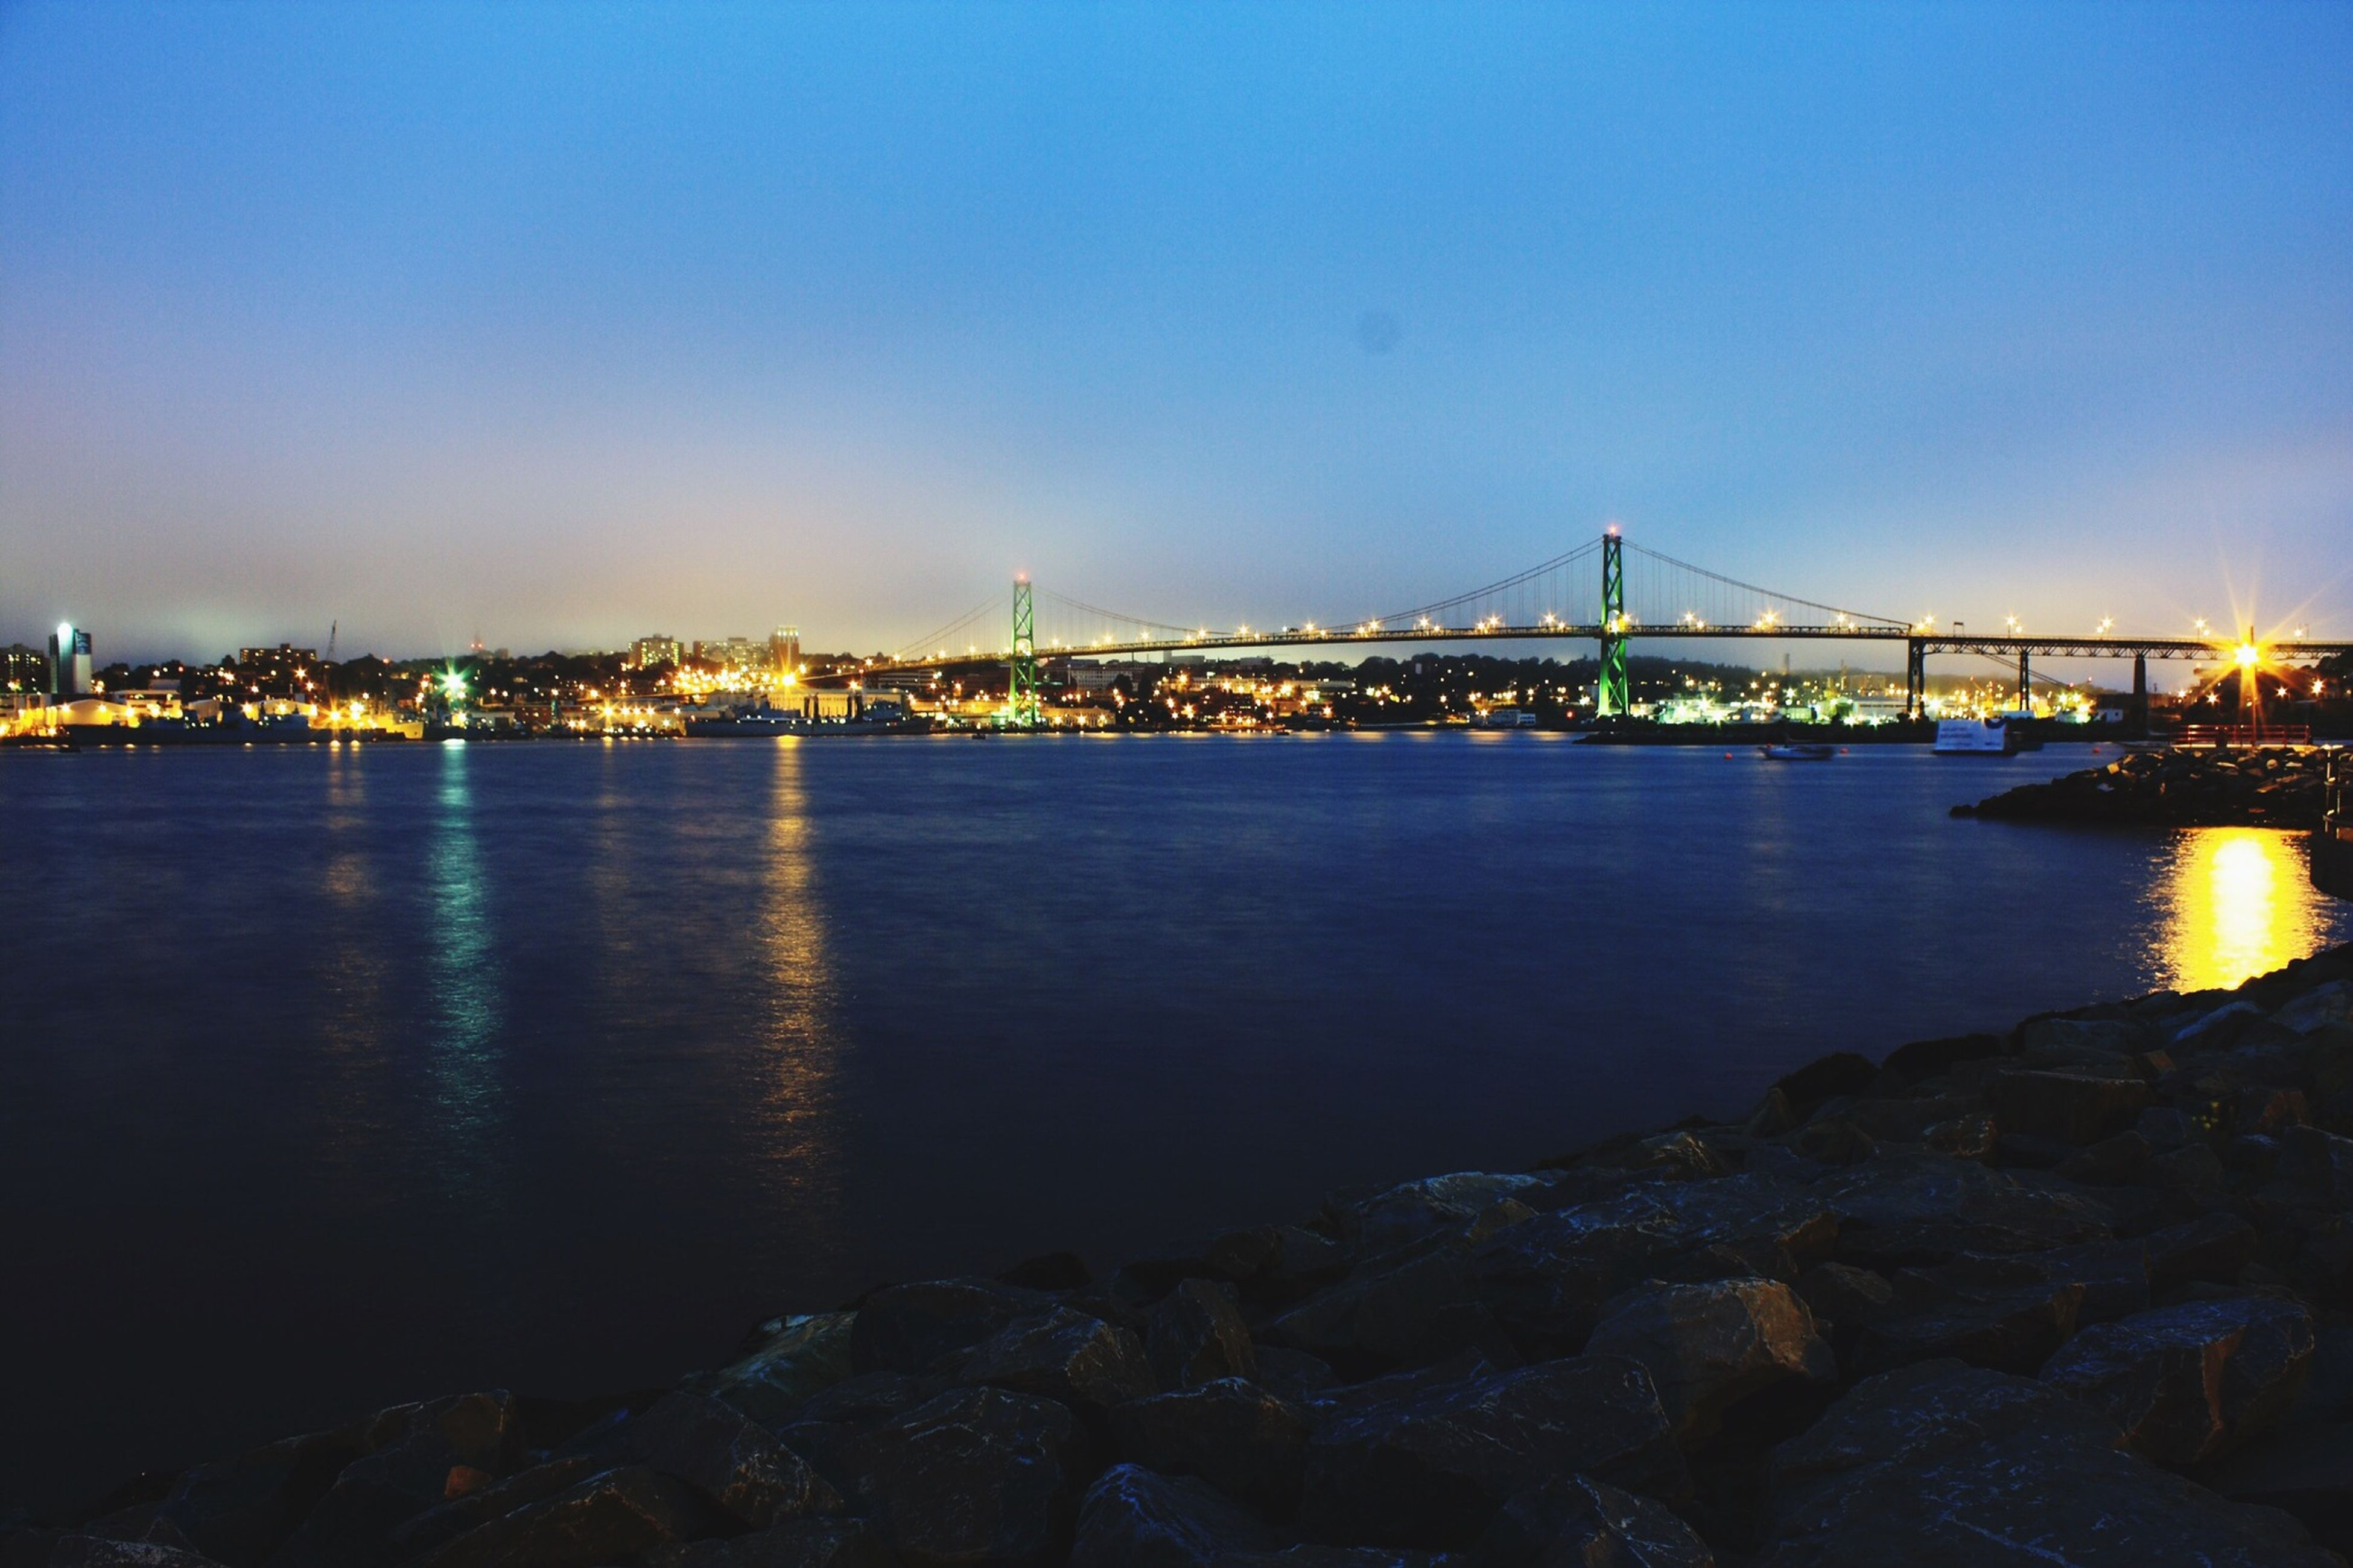 water, illuminated, clear sky, night, copy space, architecture, built structure, connection, sea, blue, reflection, bridge - man made structure, river, waterfront, city, tranquil scene, engineering, scenics, building exterior, bridge